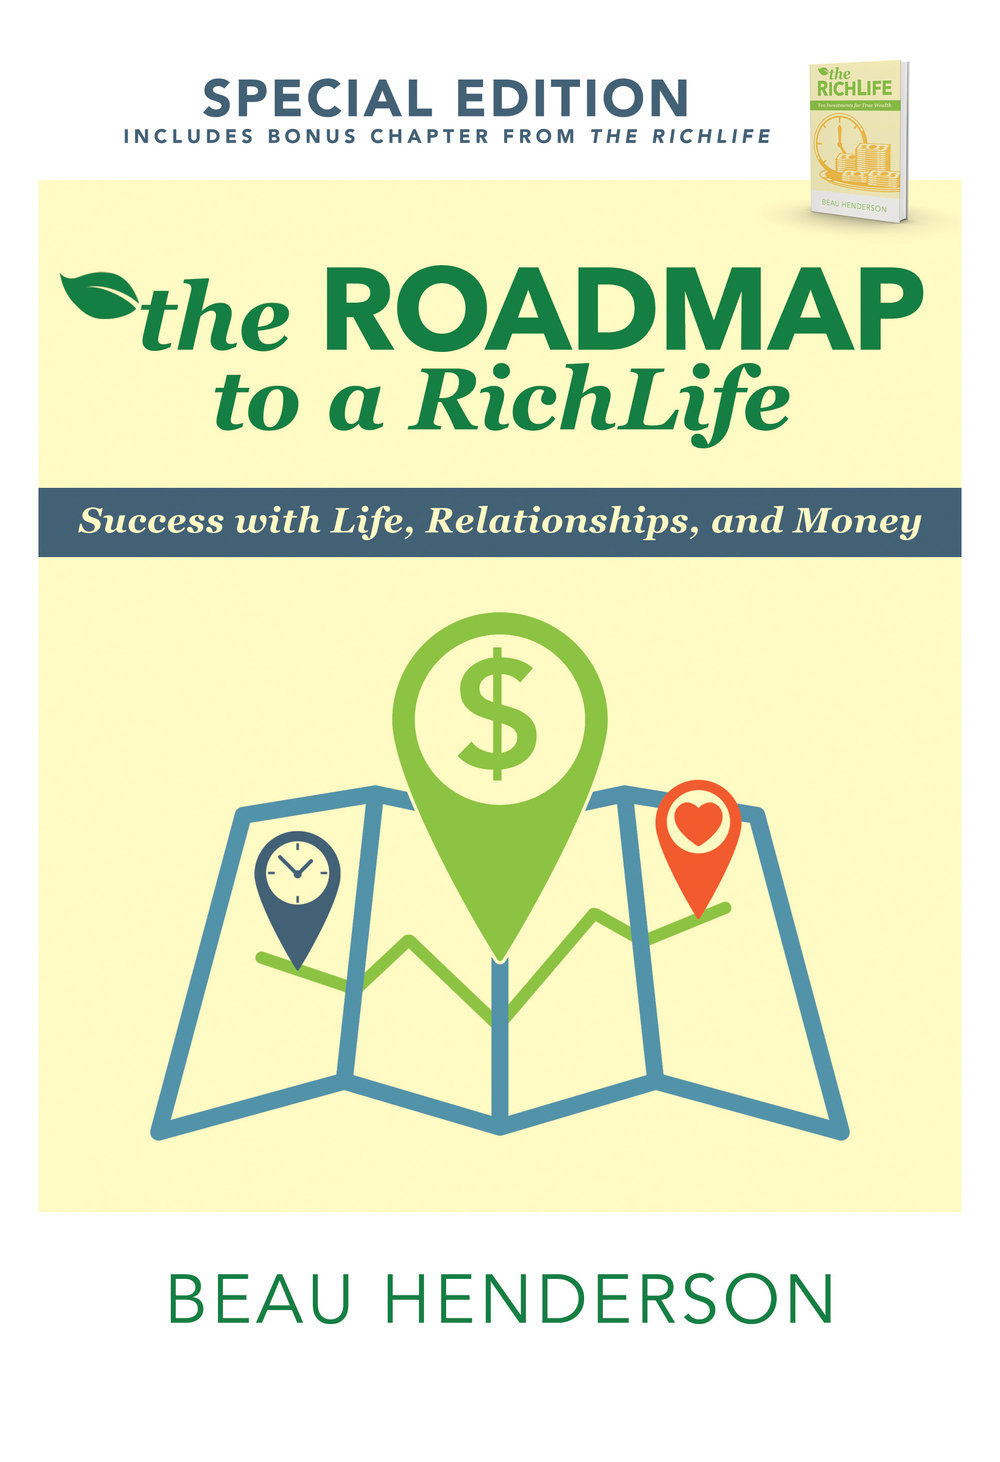 The_Roadmap_to_a_RichLife.jpg